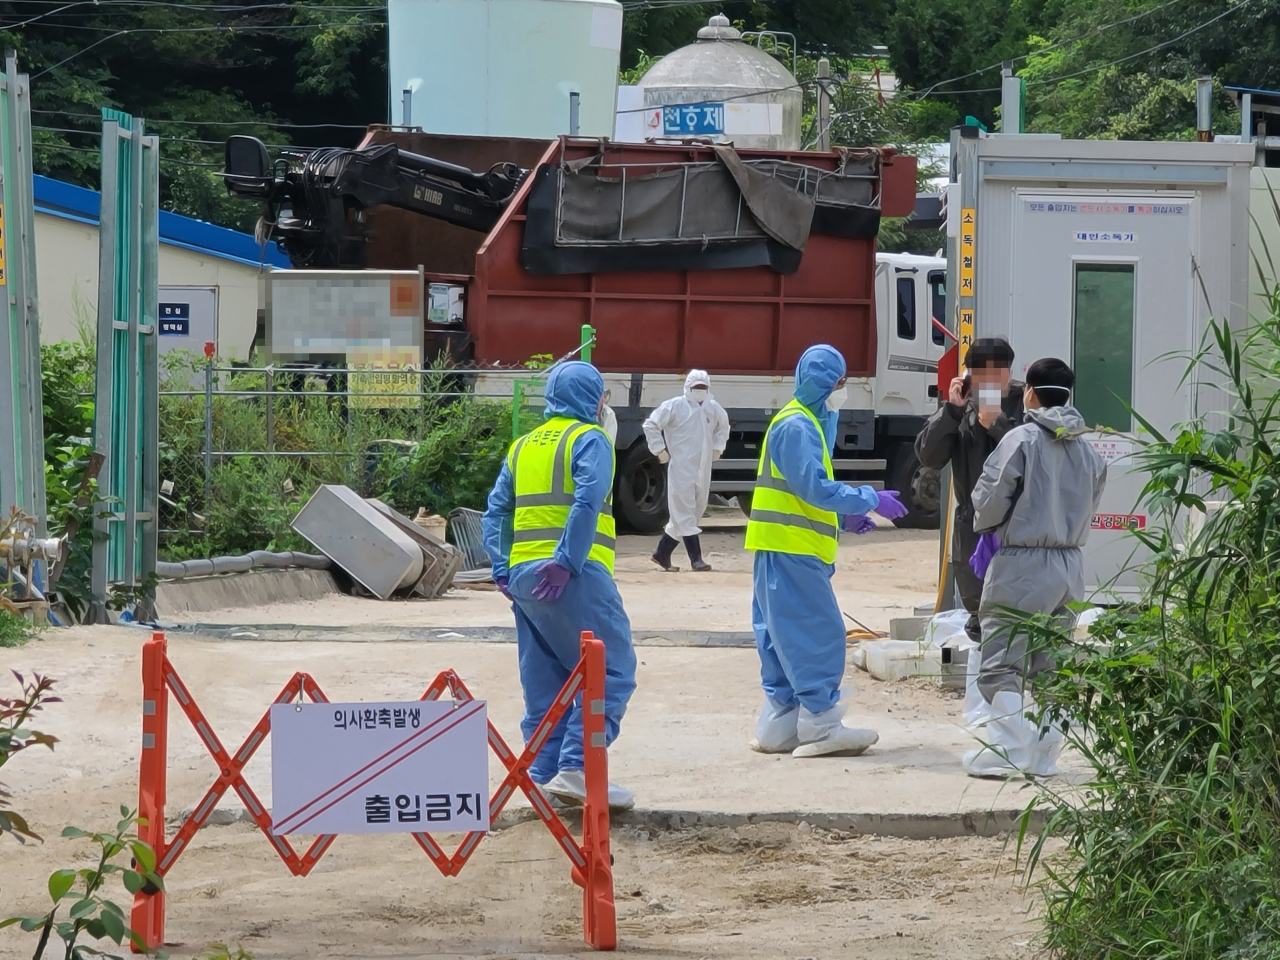 Disinfection officials at work Sunday after an African swine fever case was discovered in Goseong-gun, Gangwon Province. (Yonhap)